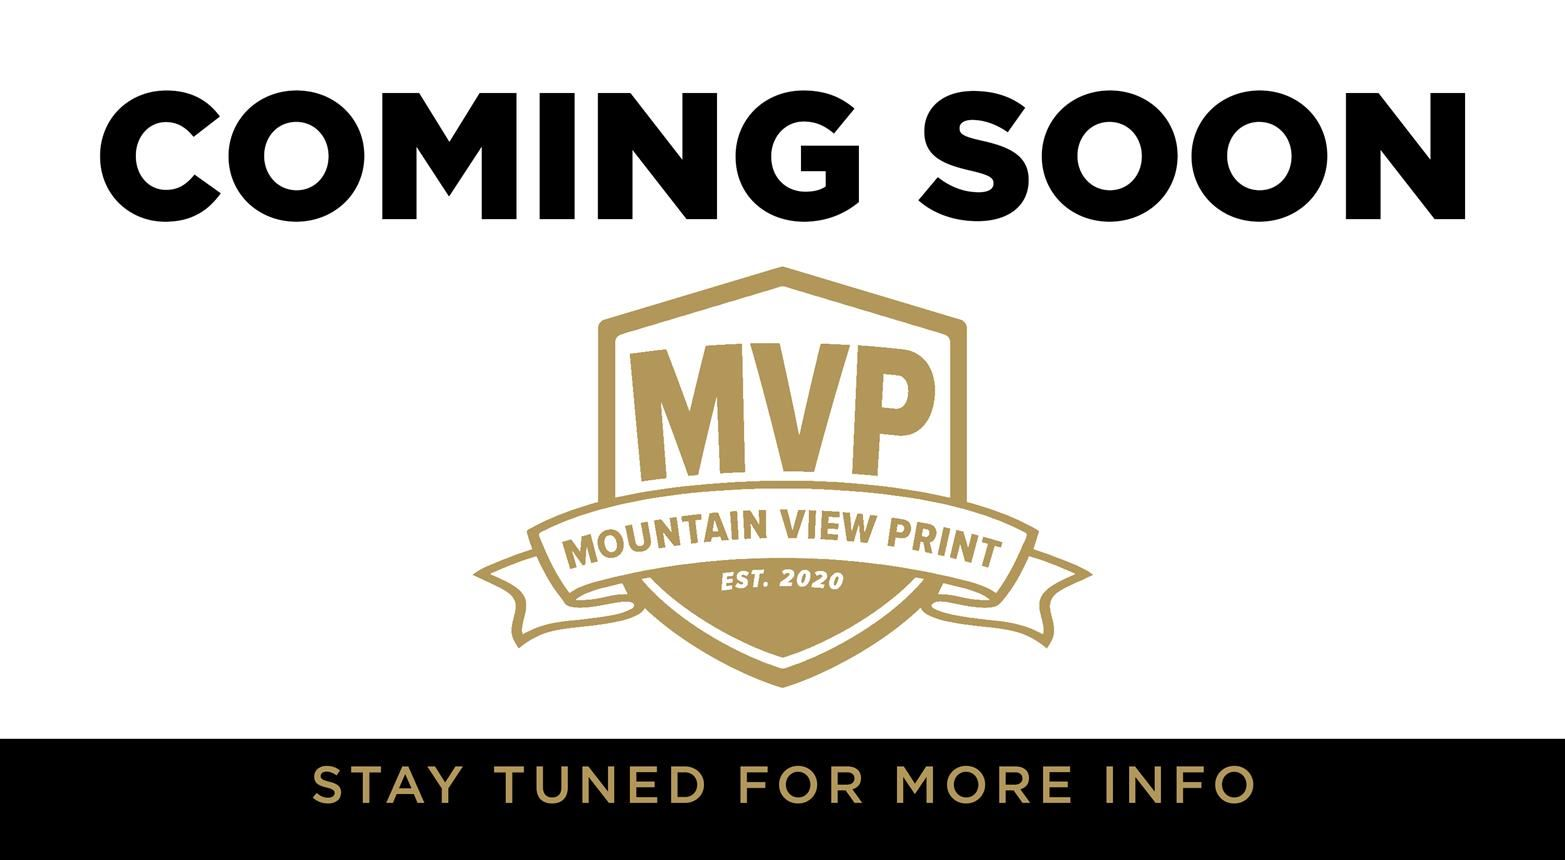 Coming Soon - Mountain View Print Shop